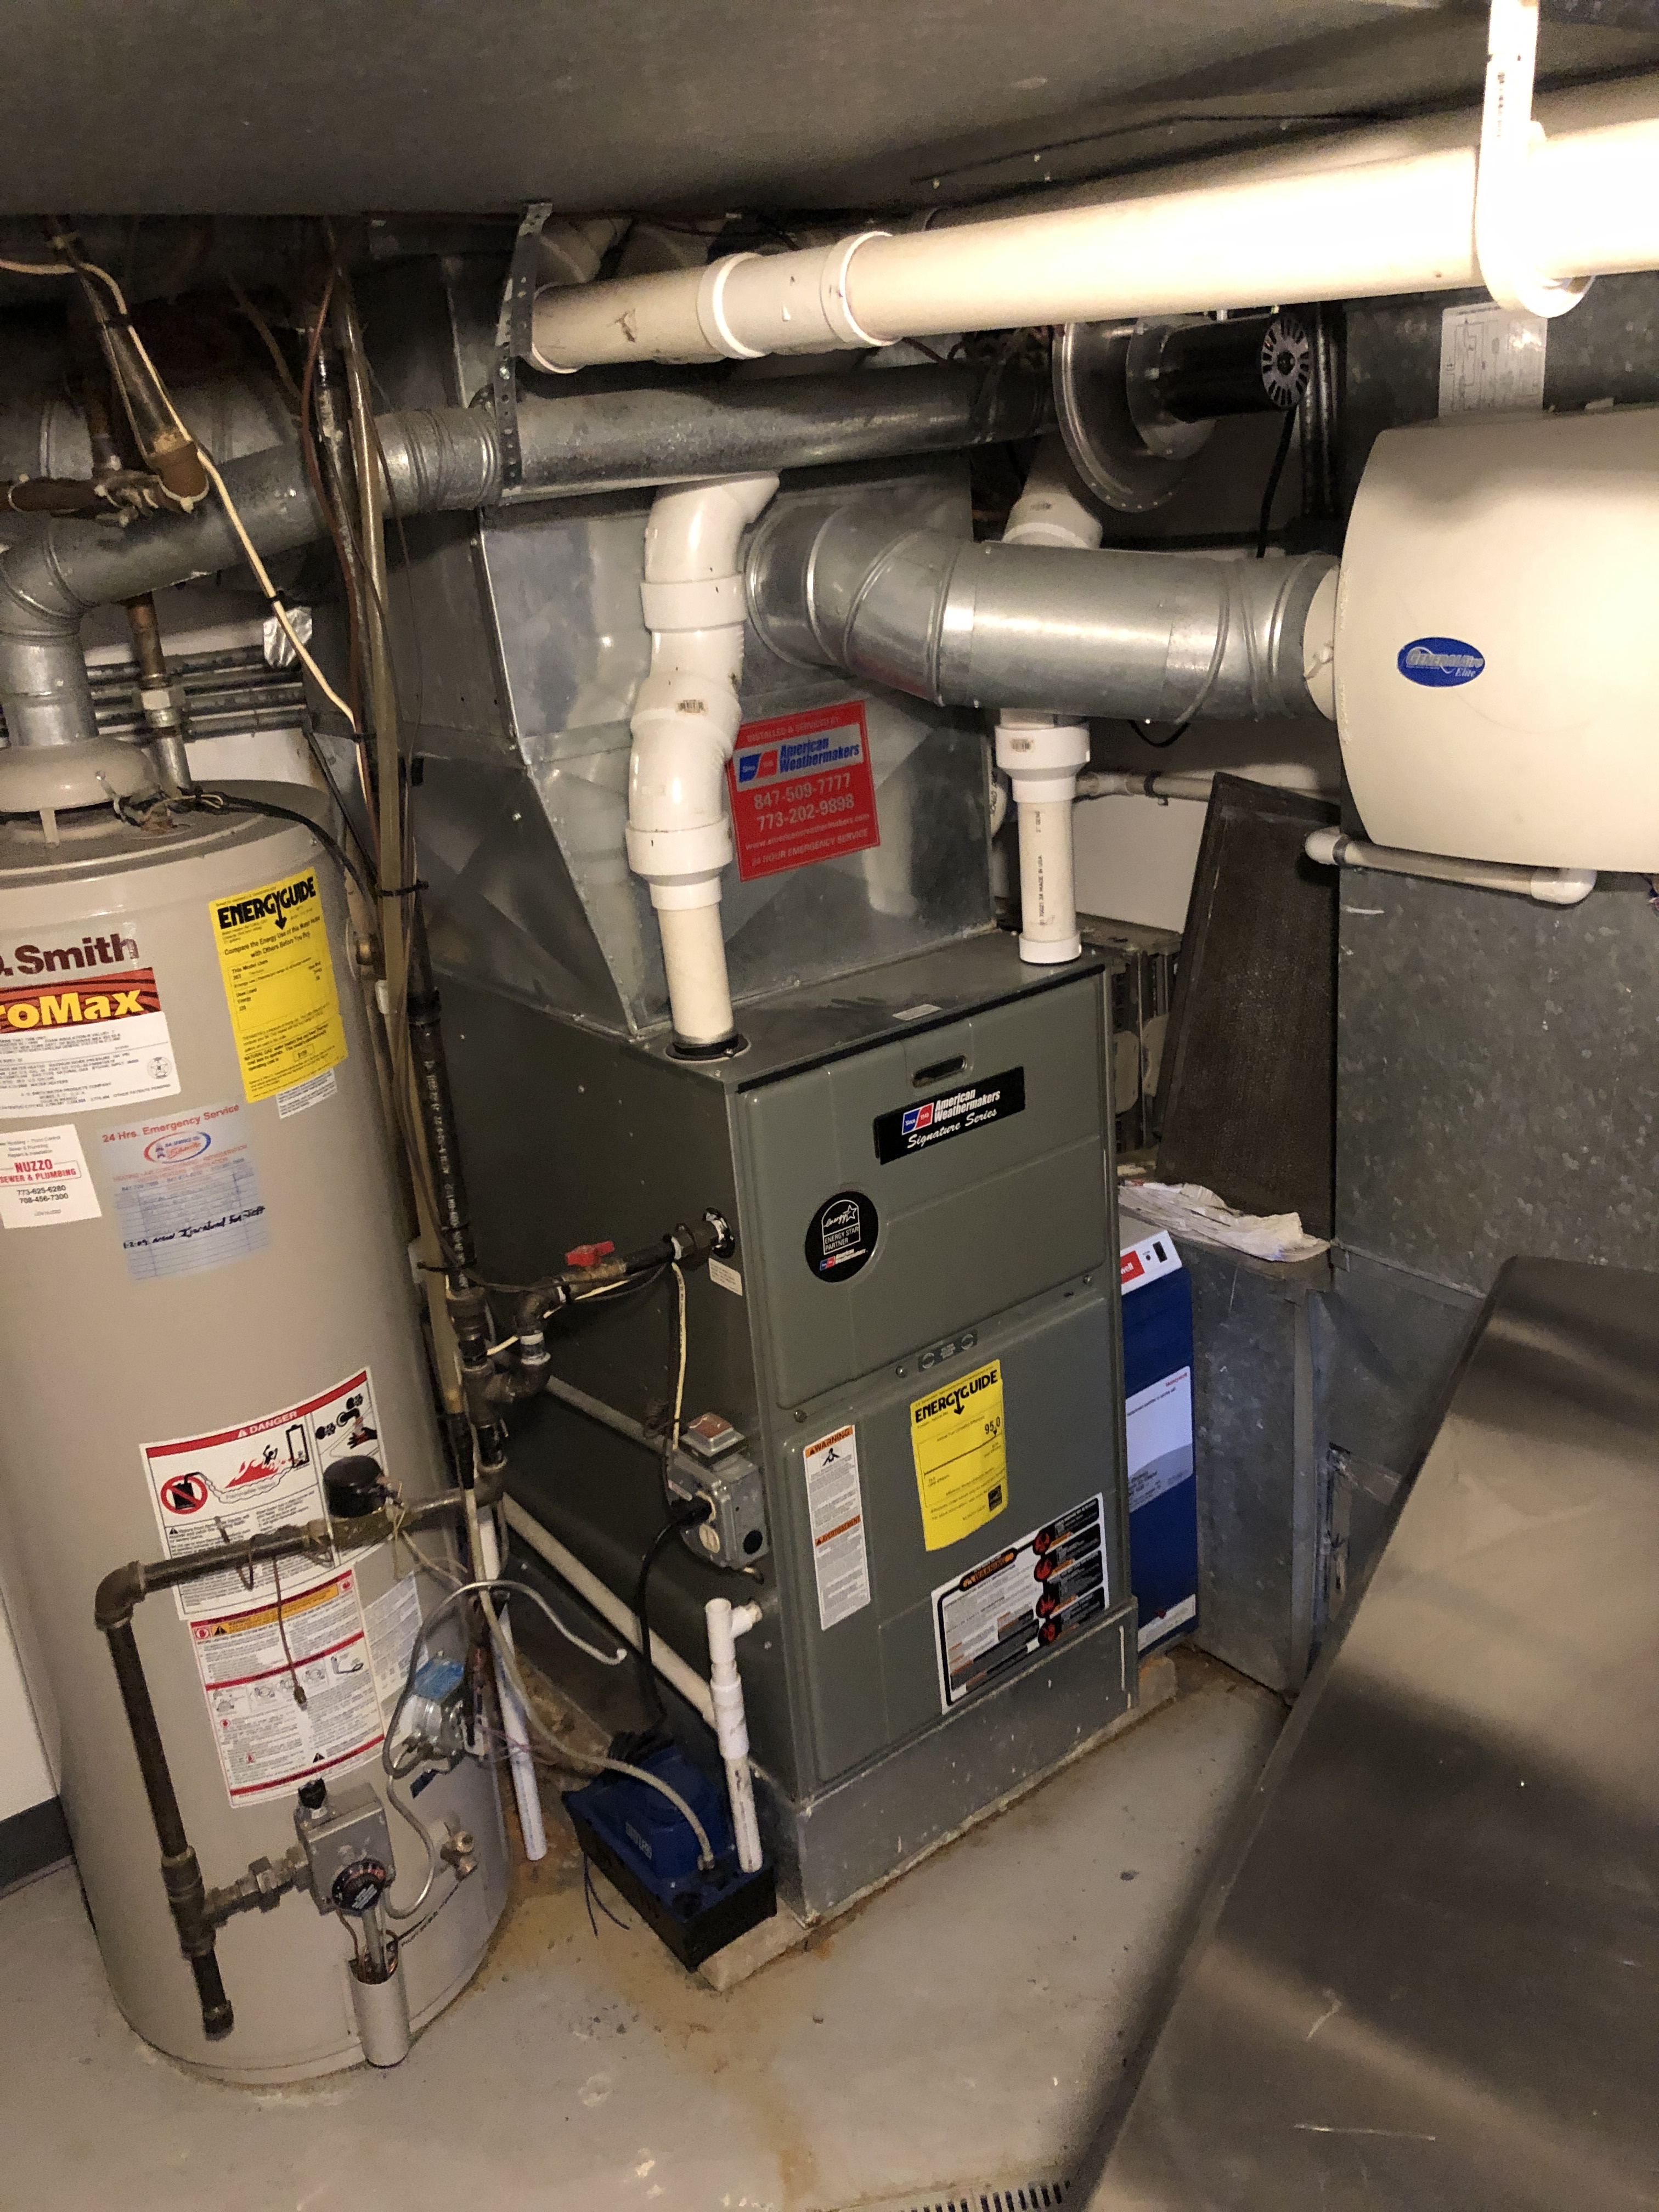 Provided club customer with annual preventative maintenance on there hot water heater, furnace, and gunner and took measures to ensure the life expectancy of the equipment